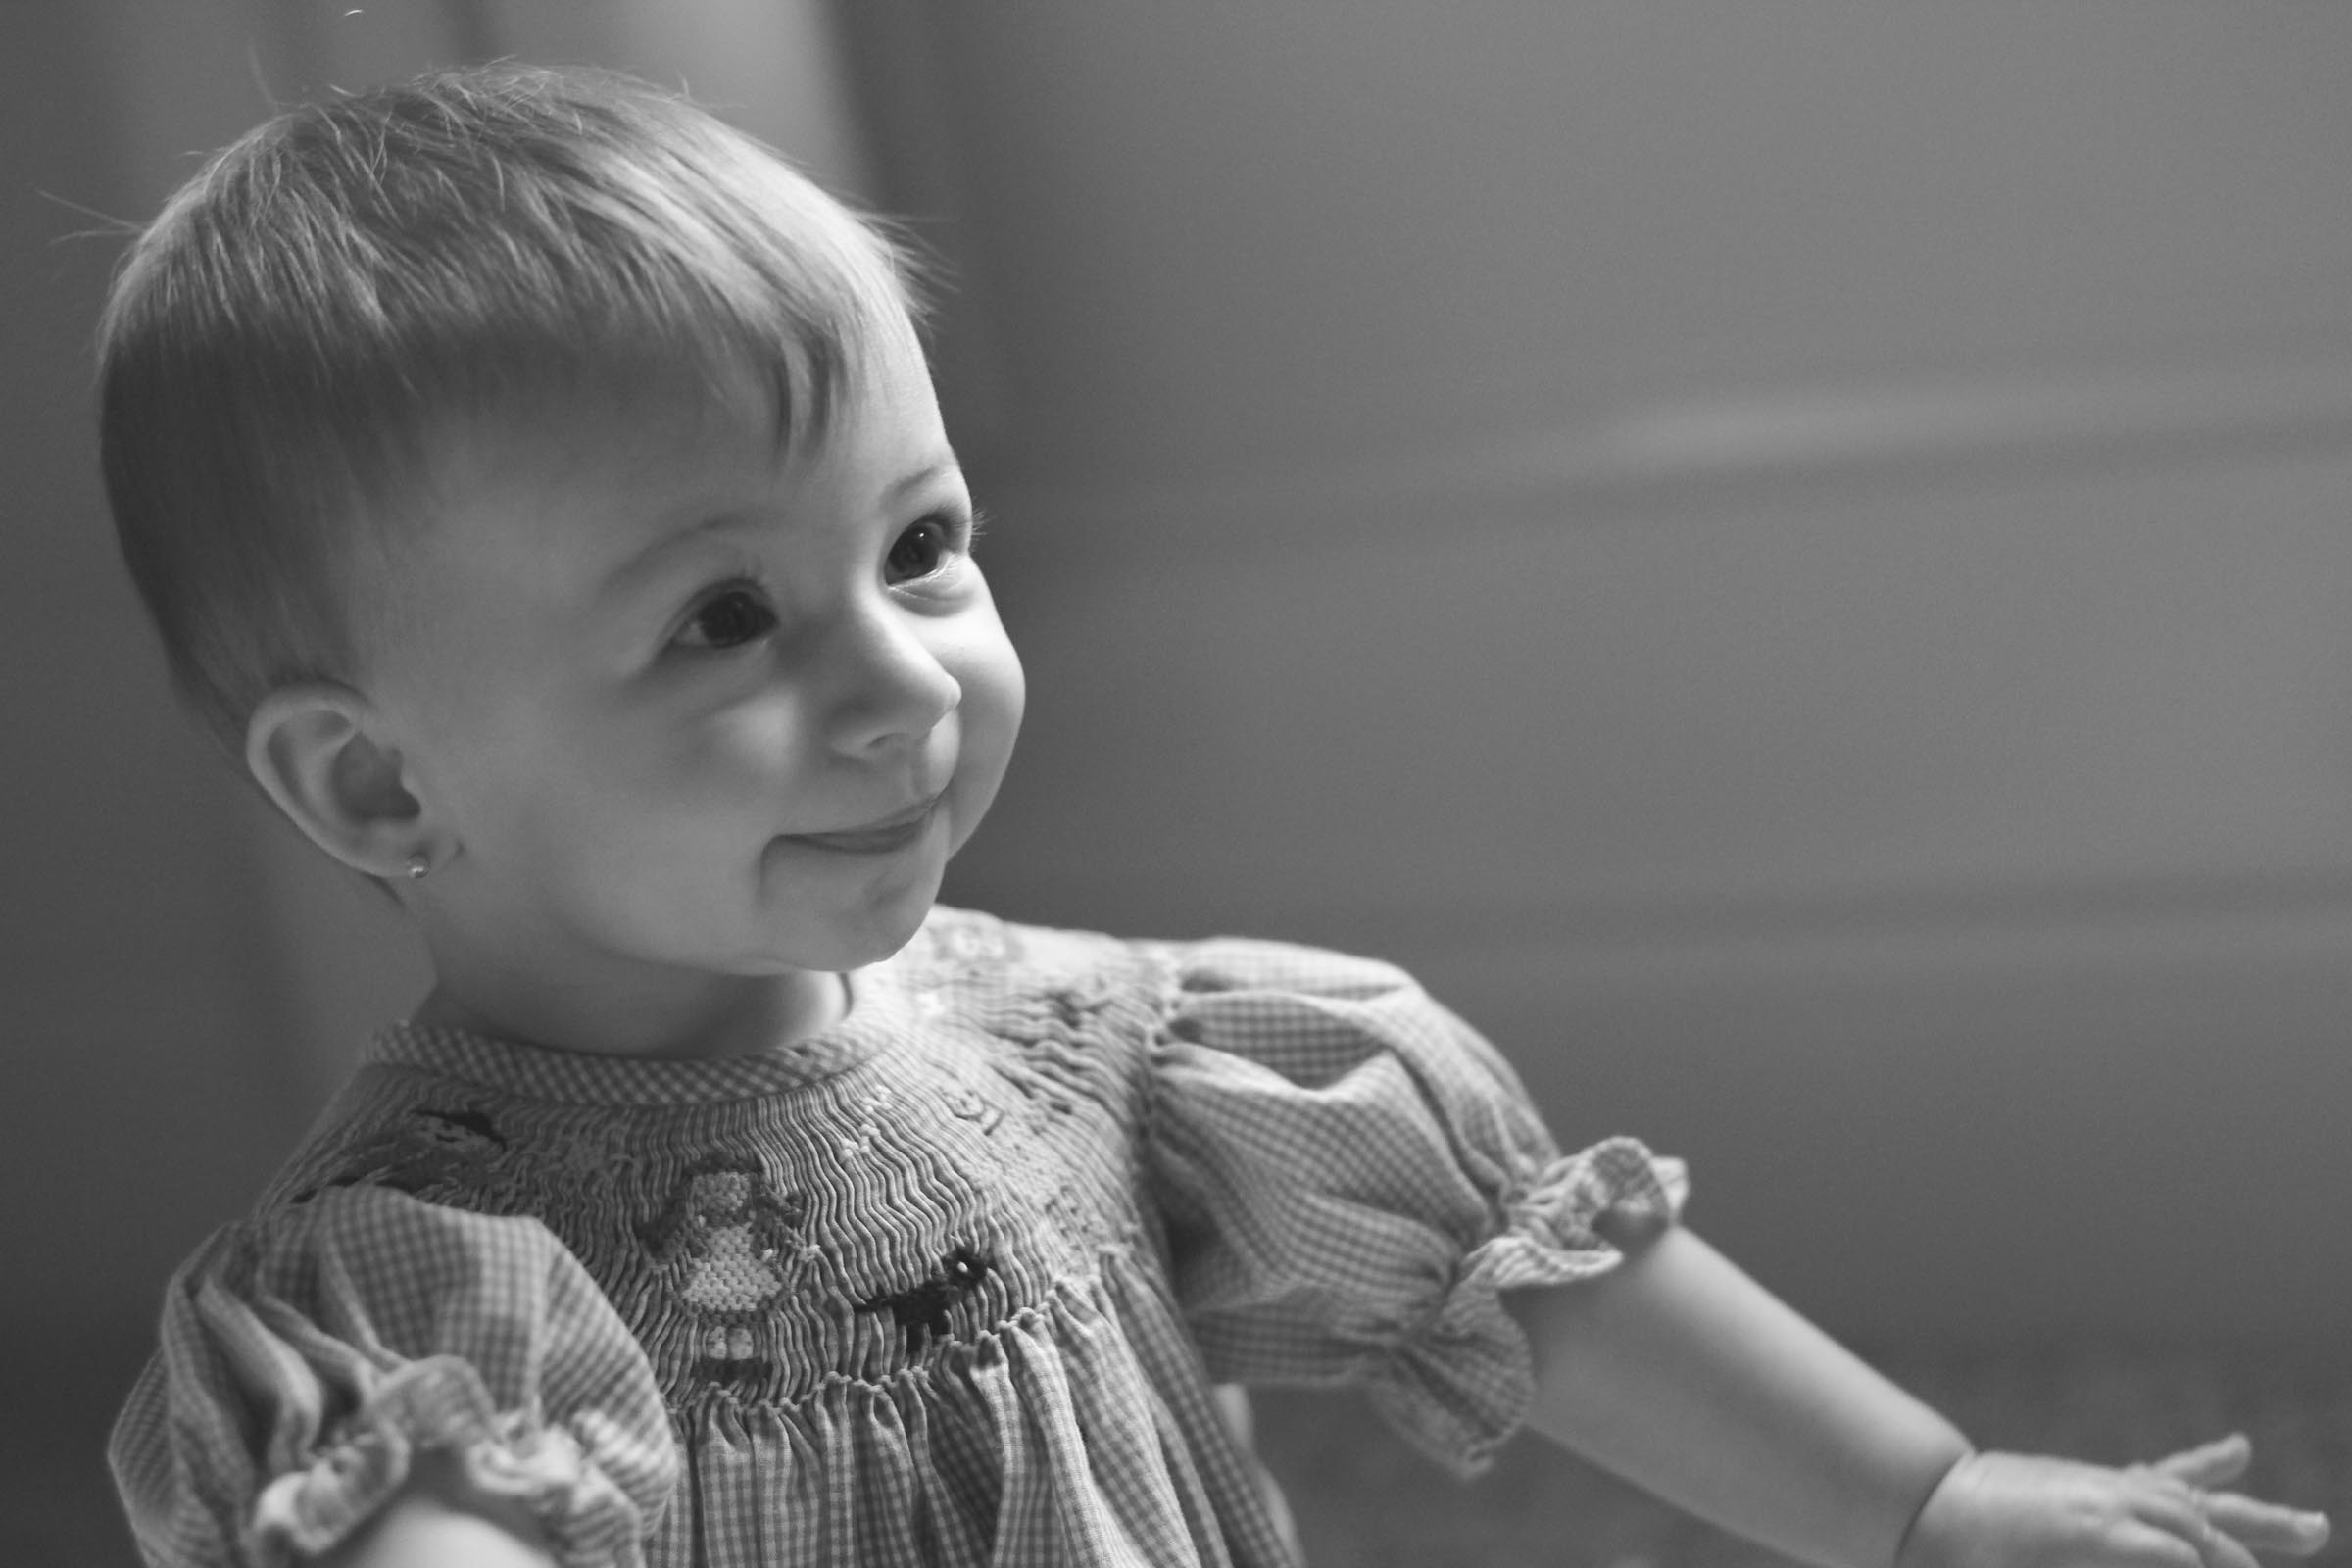 ashley-landry-photography-raymond-09-2016-29-of-41